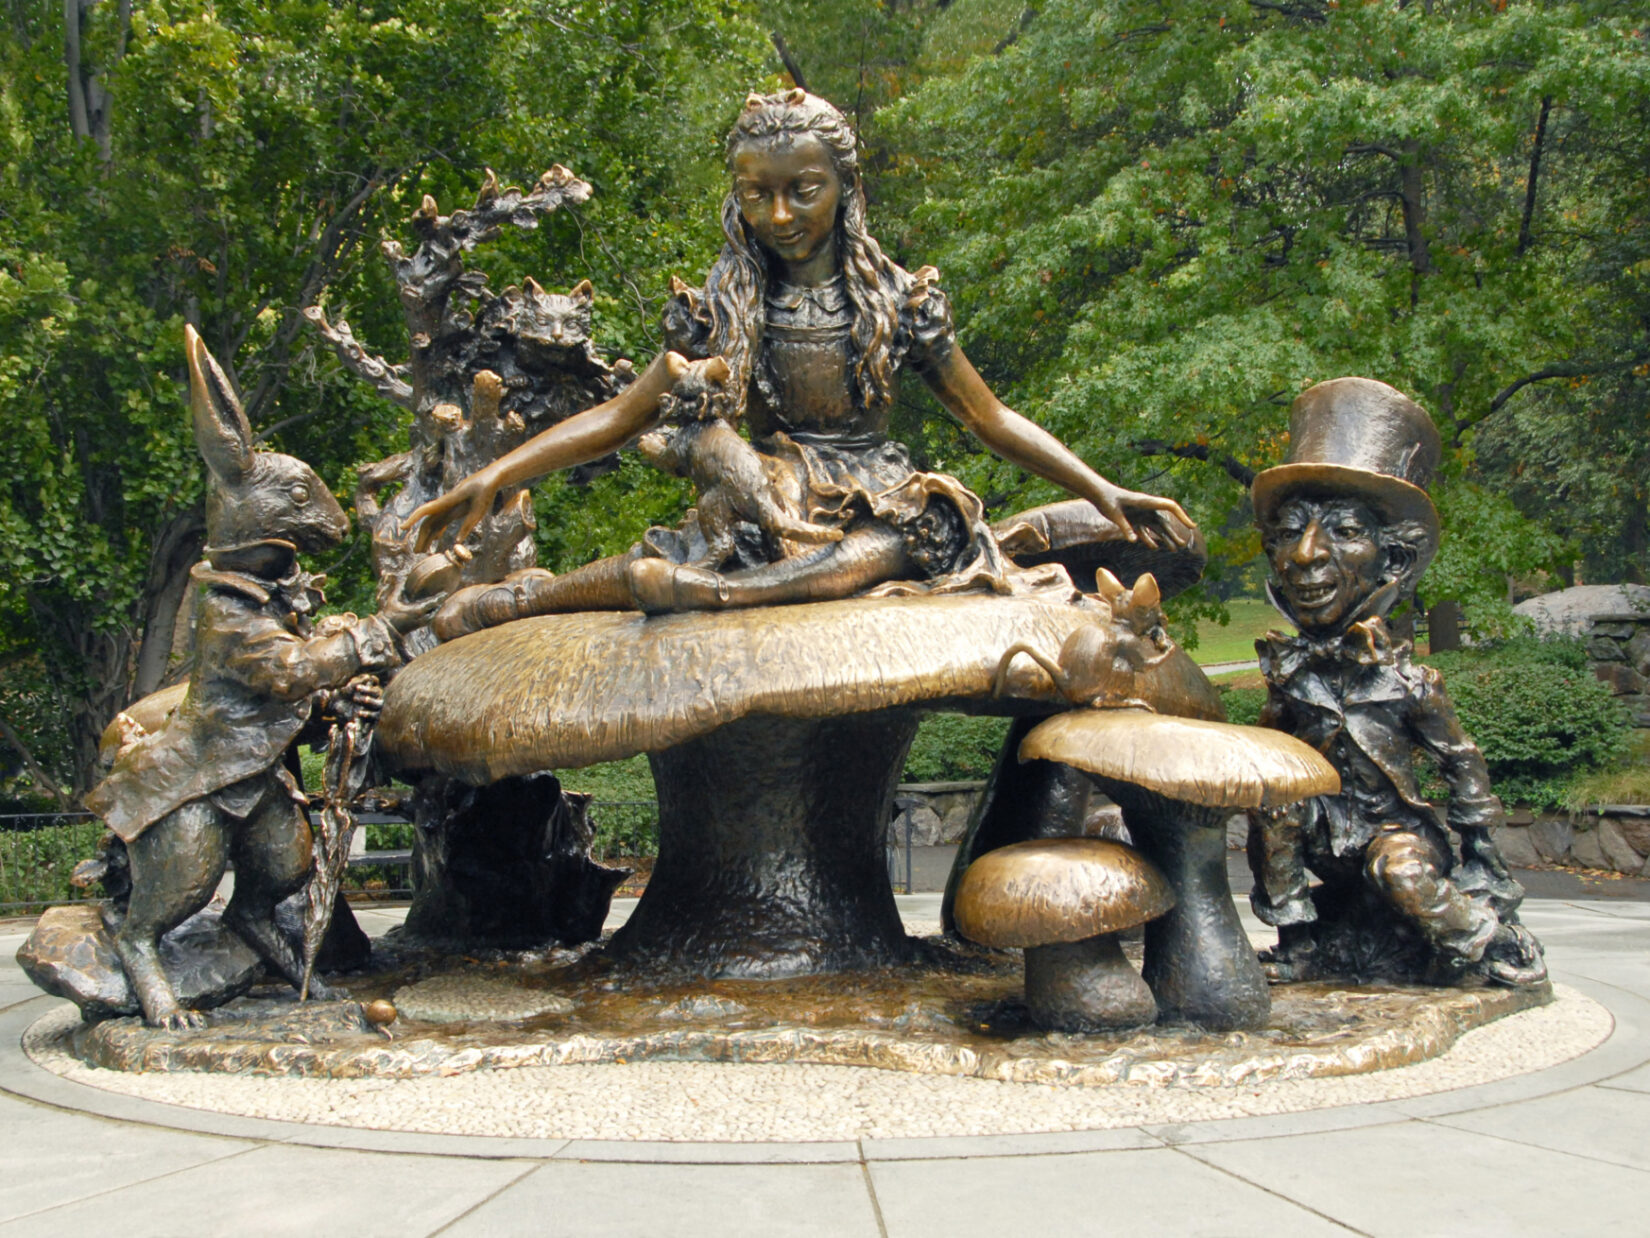 Alice in Wonderland Statue Central Park credit the Central Park Conservancy